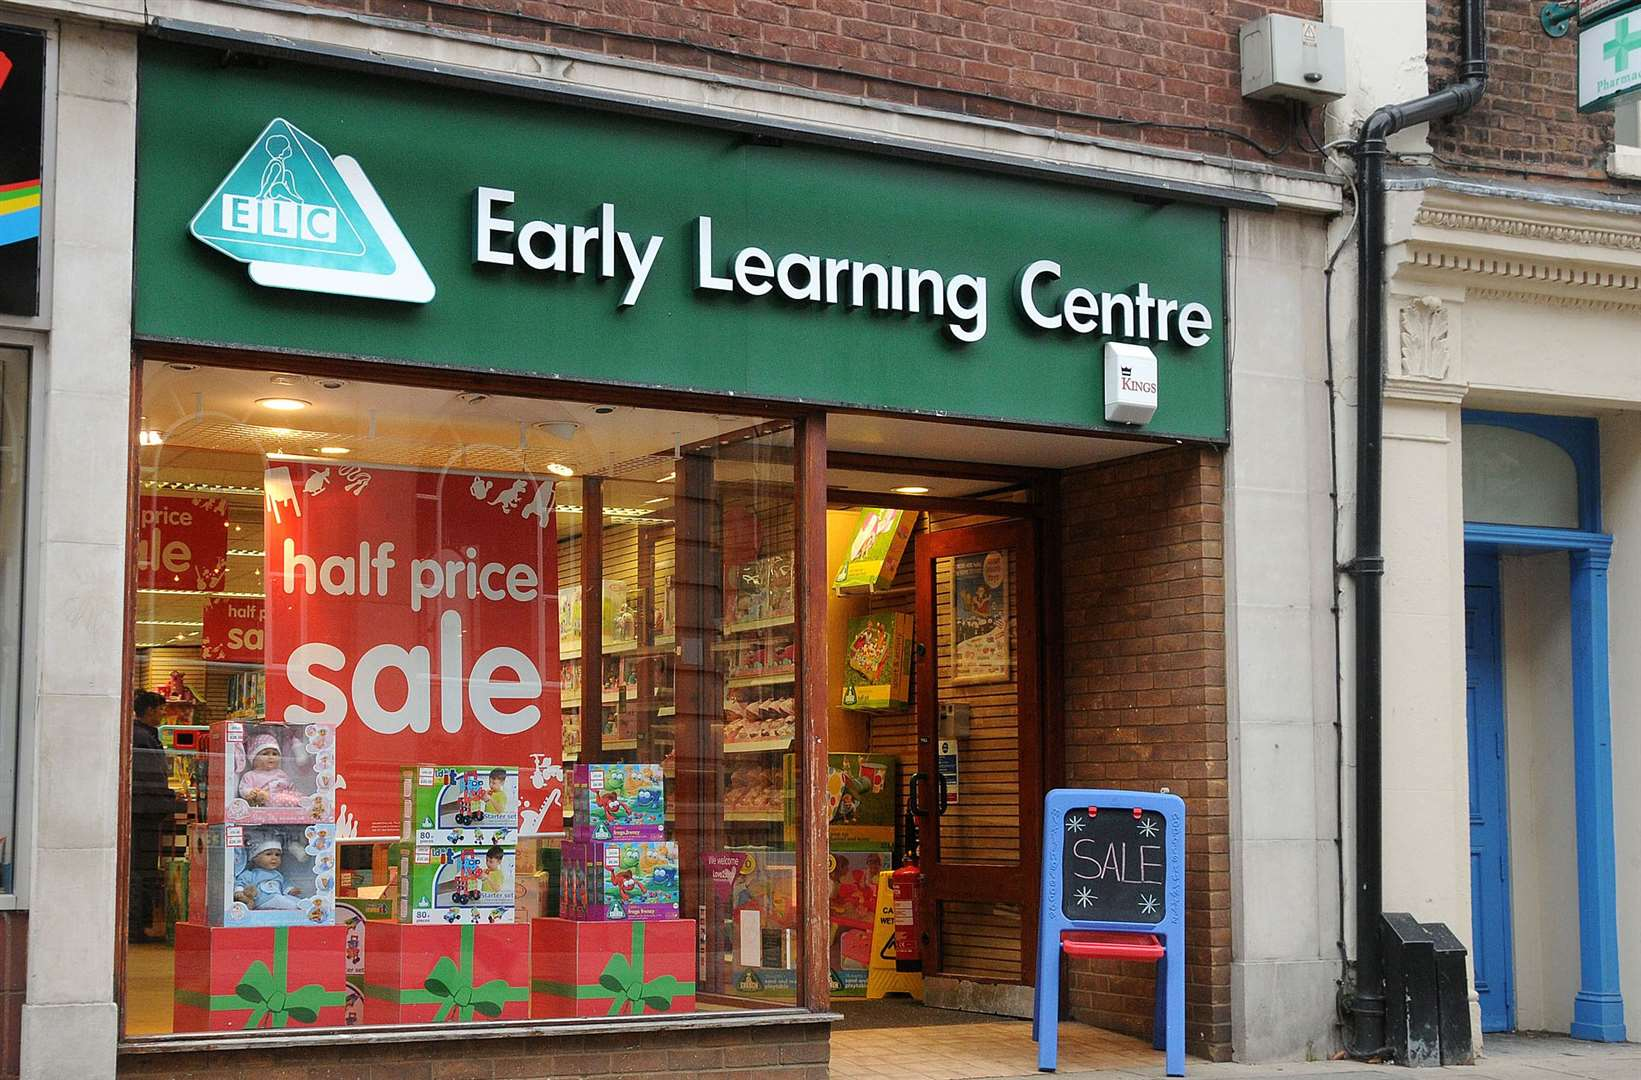 Early Learning Centre stores used to be a regular feature of Kent's high streets. Now their toys can be bought online or through The Entertainer.